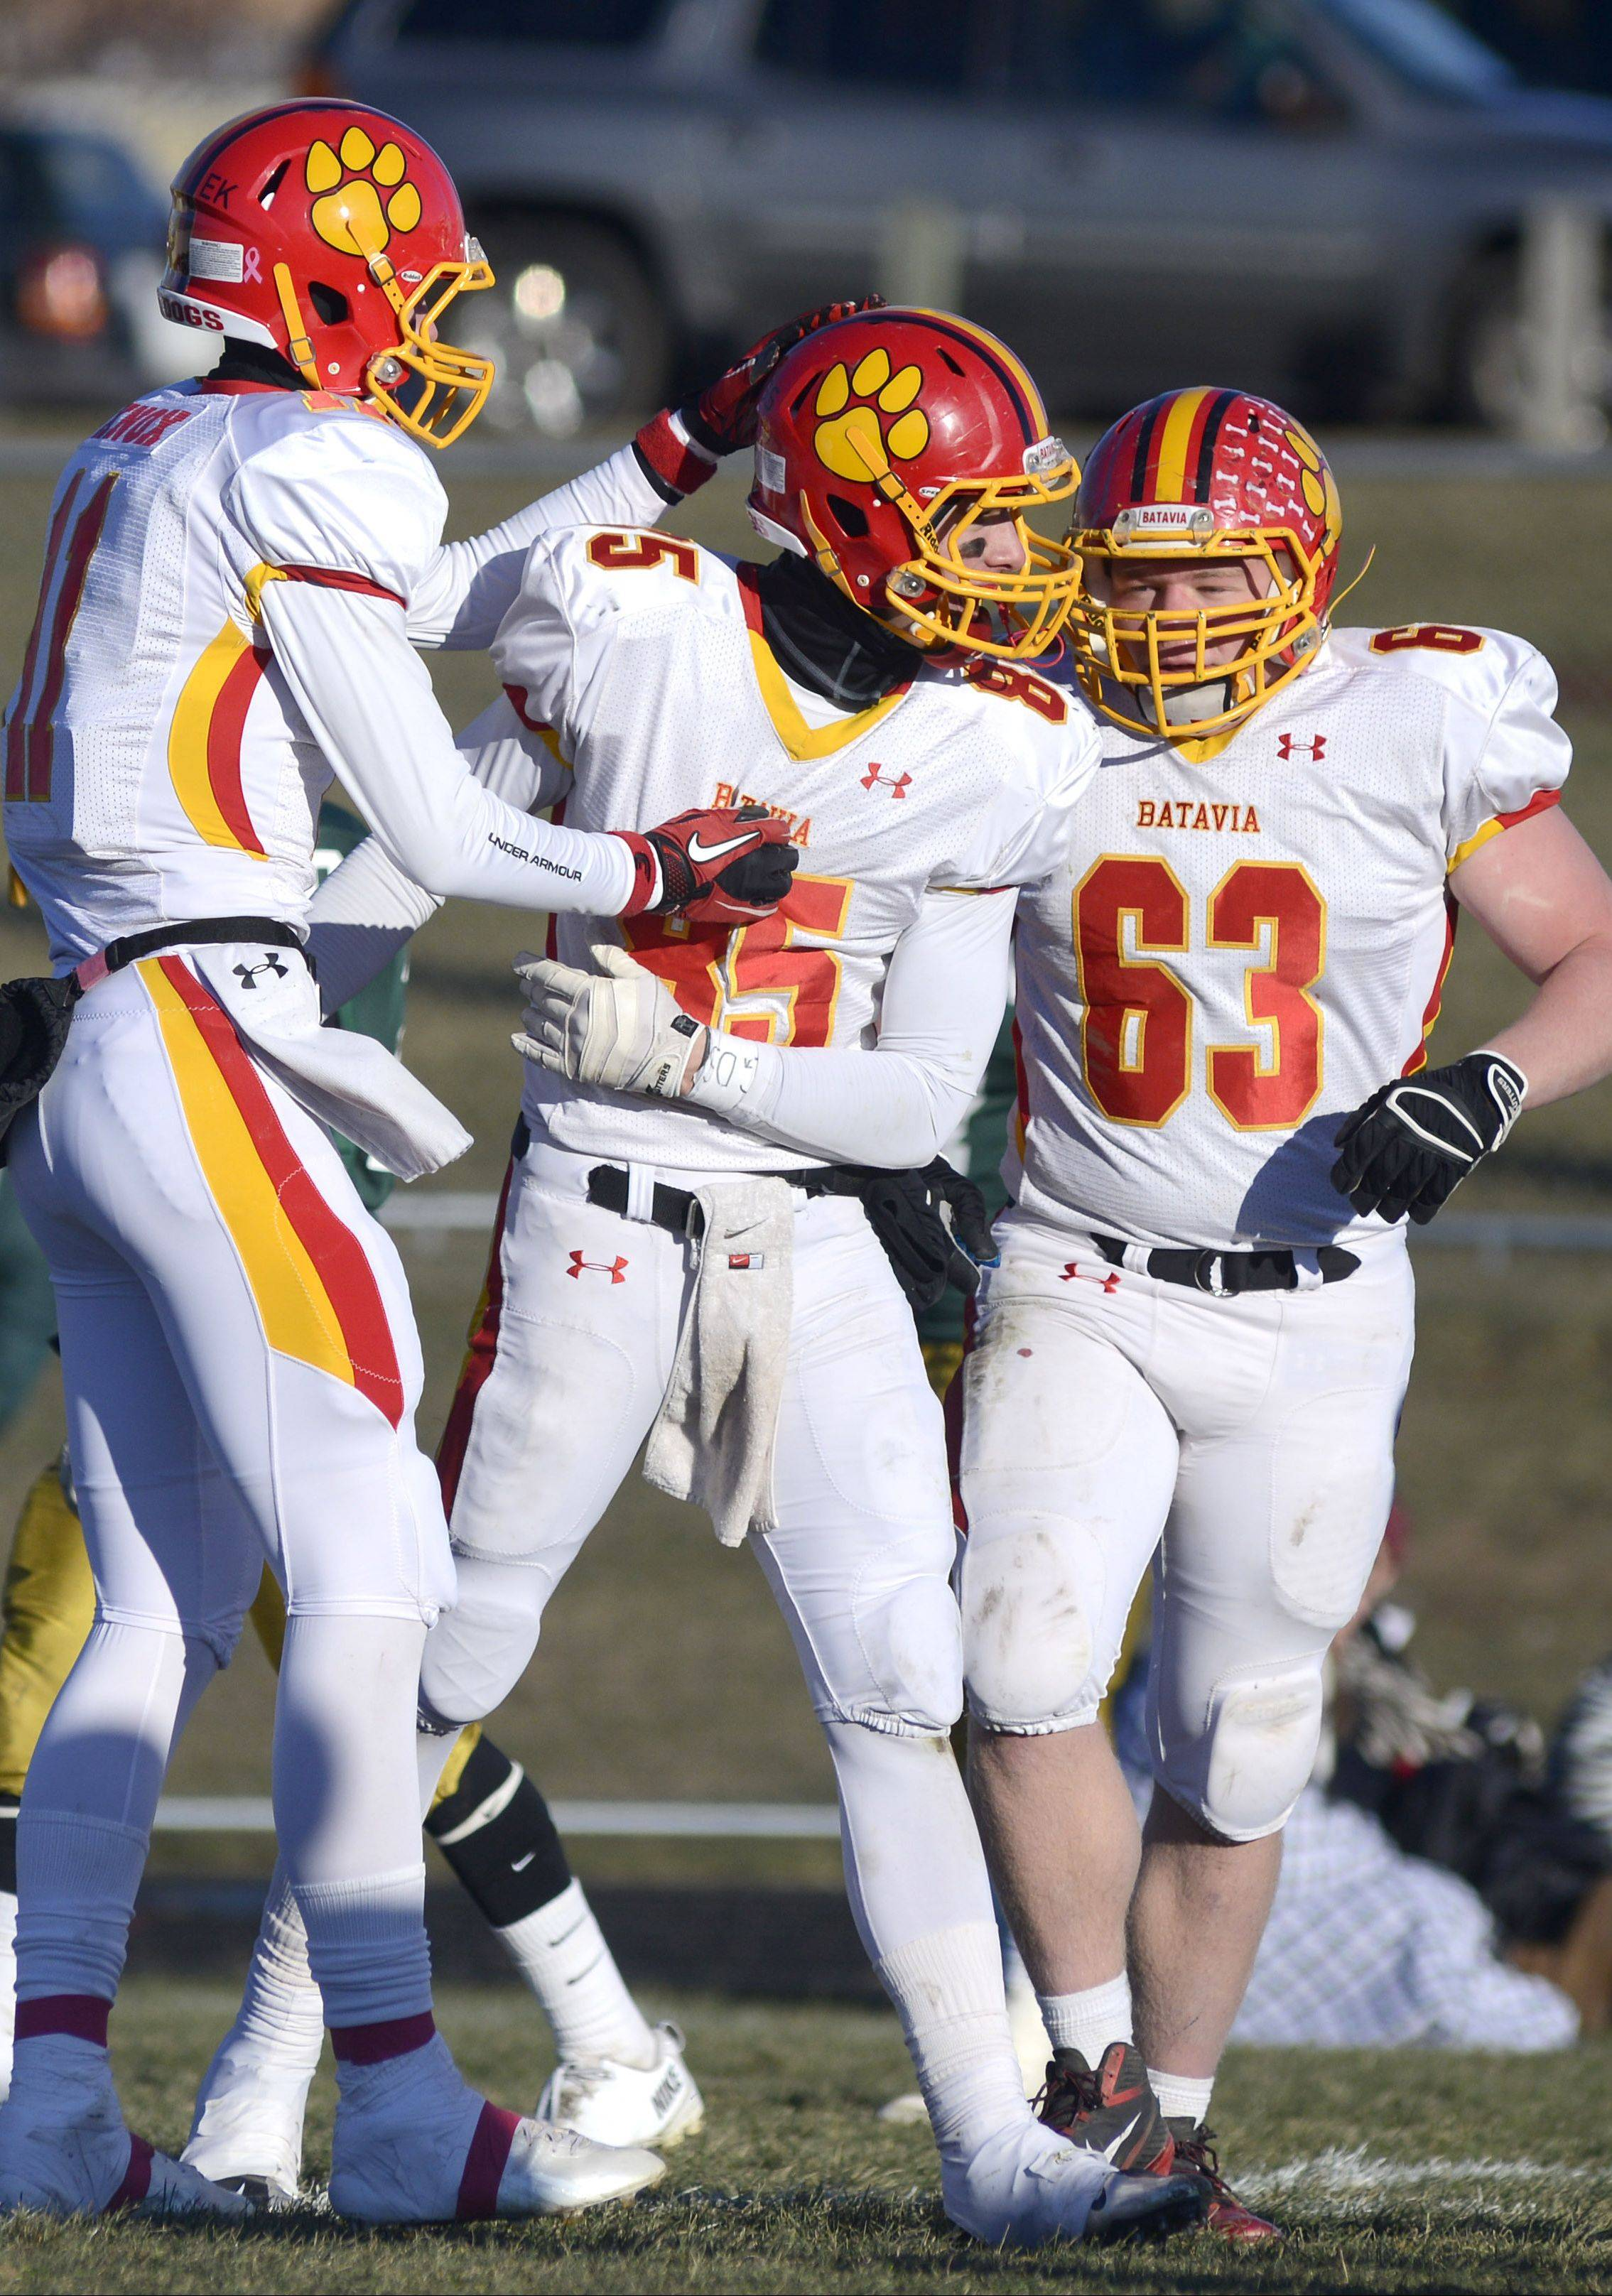 Batavia's Tucker Knox, left, and Connor McKeehan, right, congratulate teammate Jordan Zwart, center, on his 90-yard touchdown in the fourth quarter.